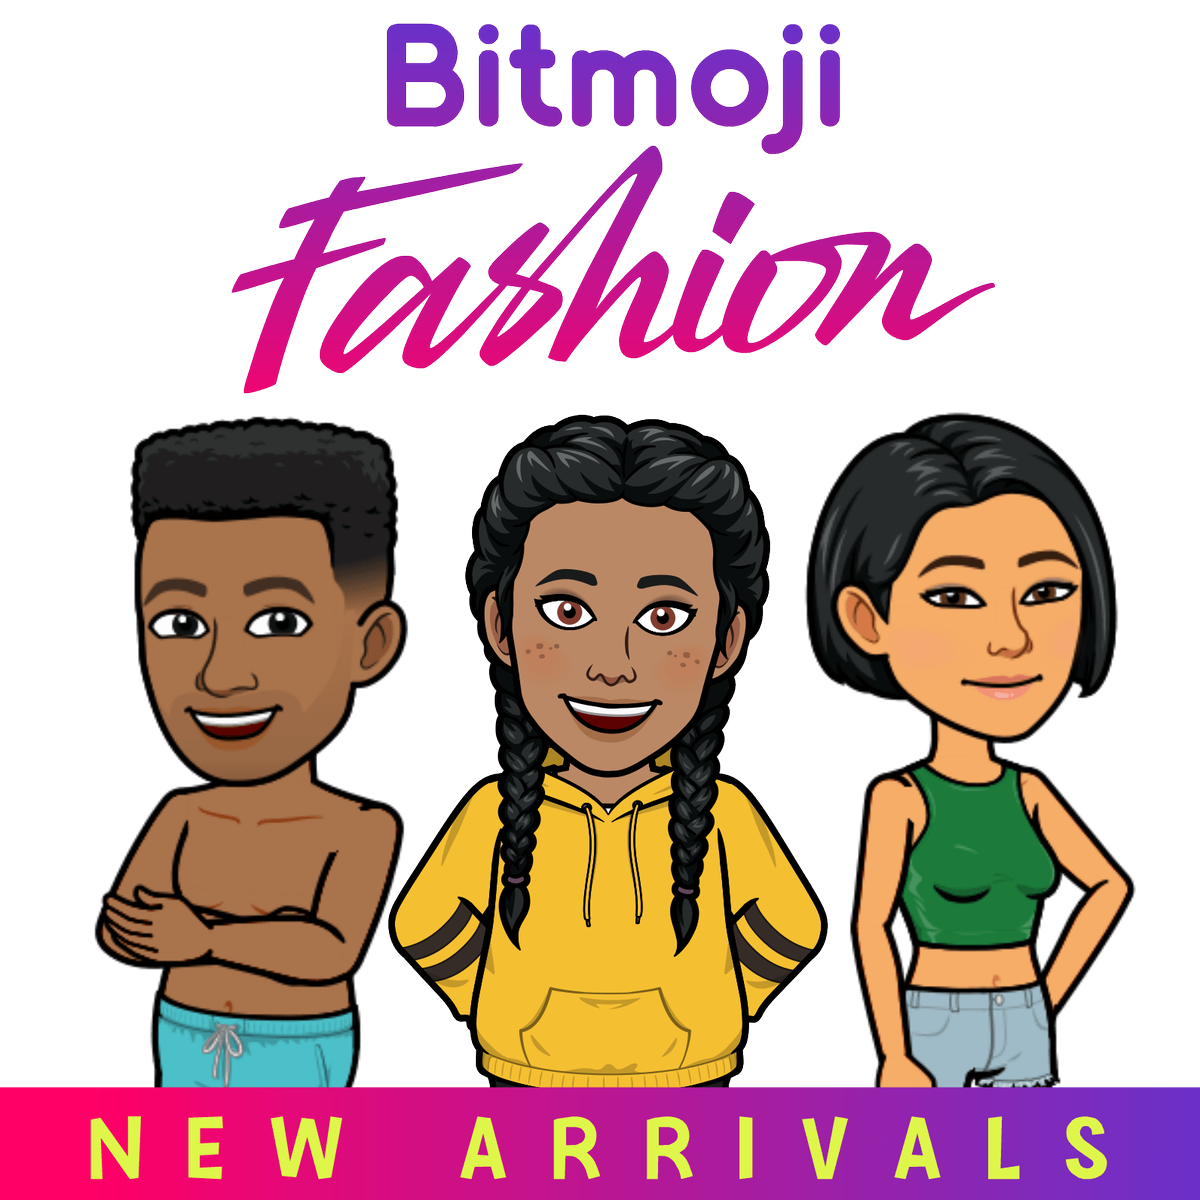 Check it out! Newmojis and new outfits just dropped 😎 https://t.co/VxOIgcrRLi